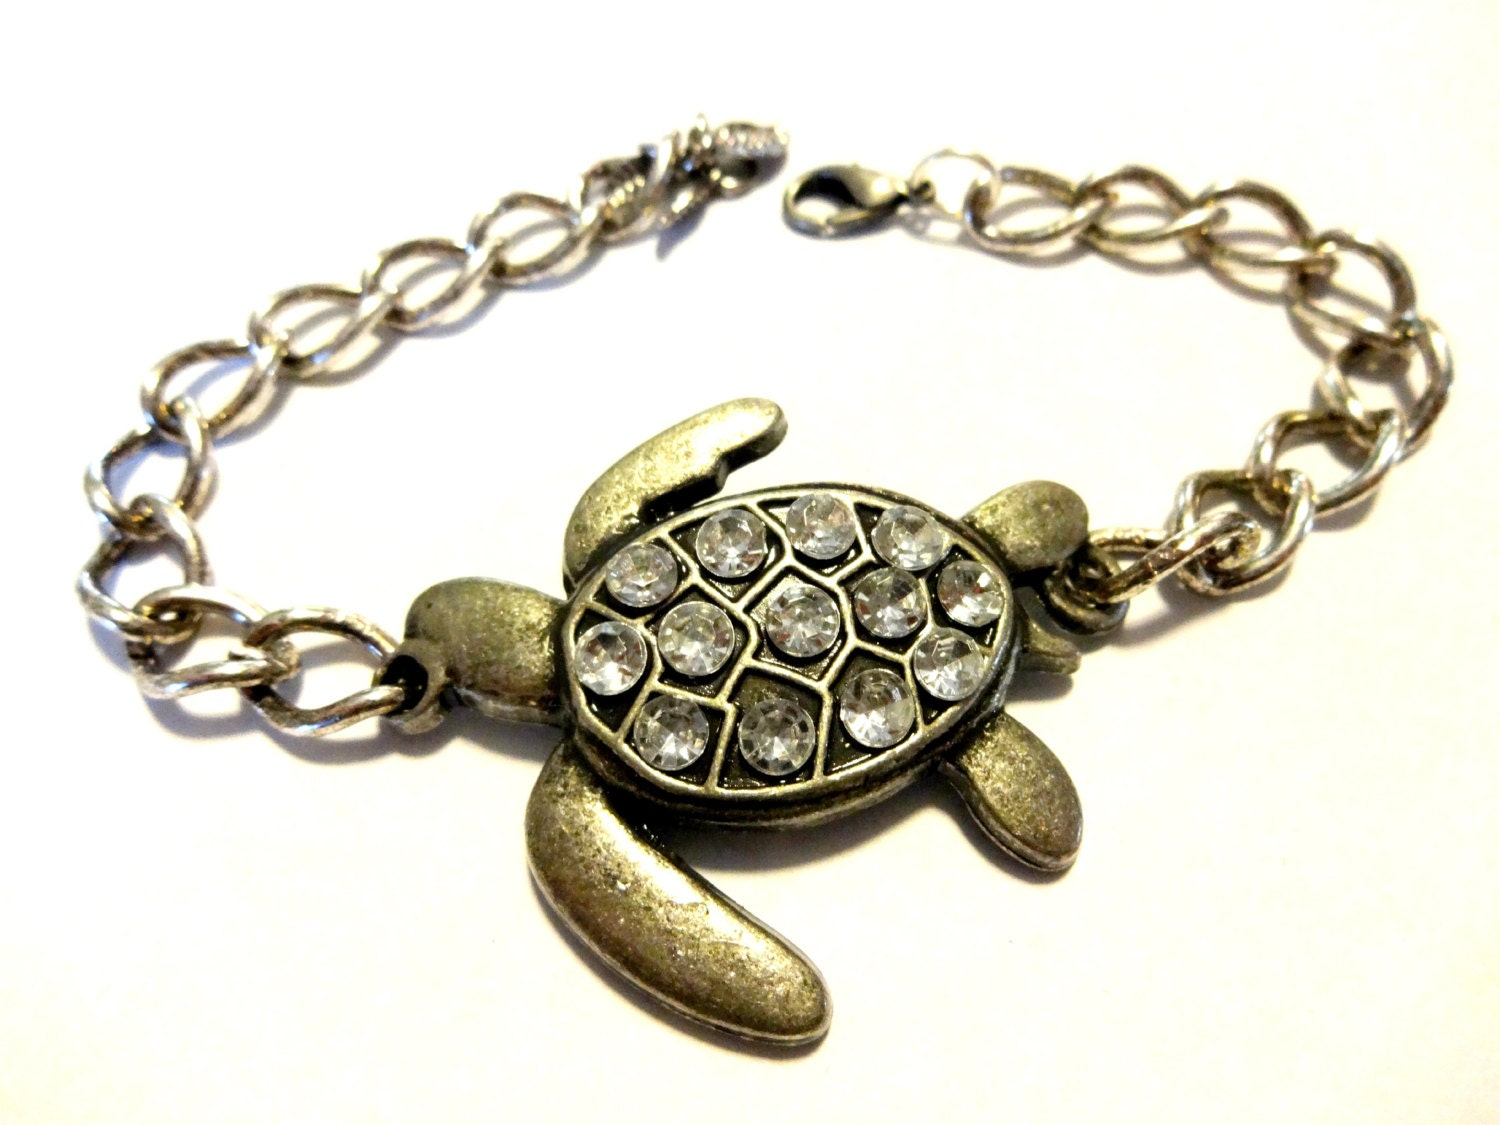 ani turtle charm sea and bangle common bond project alex angle bracelet